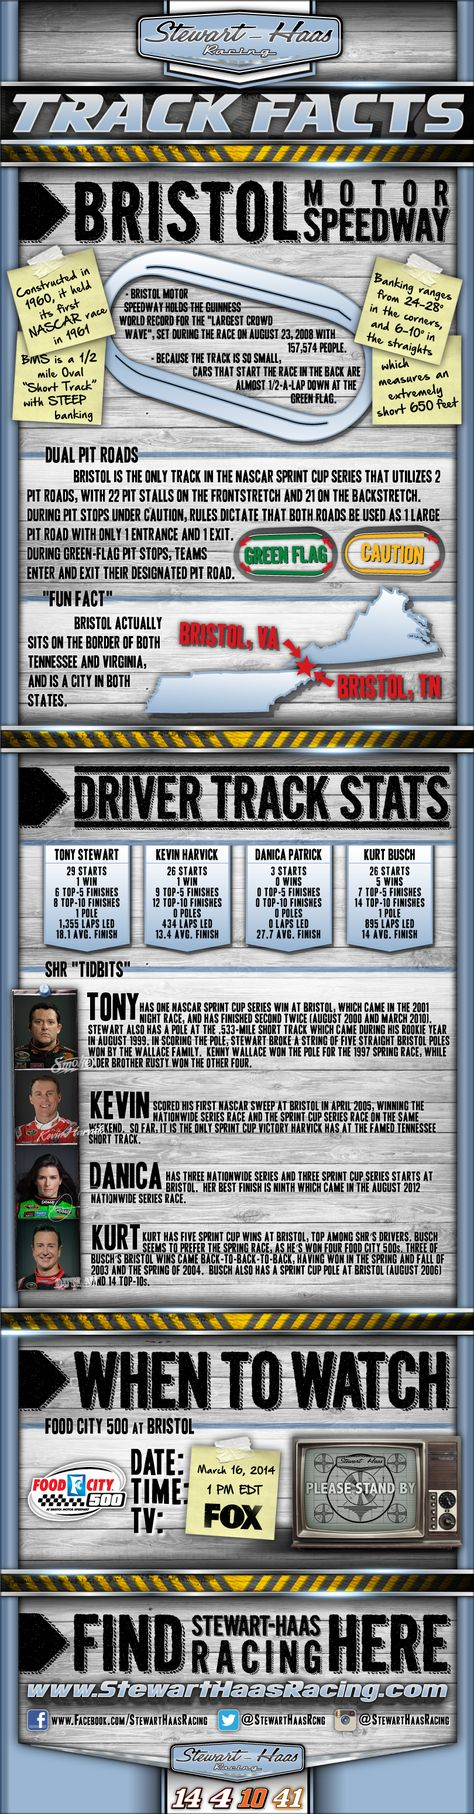 TRACK FACTS: Stewart-Haas Racing, our drivers and Bristol Motor Speedway